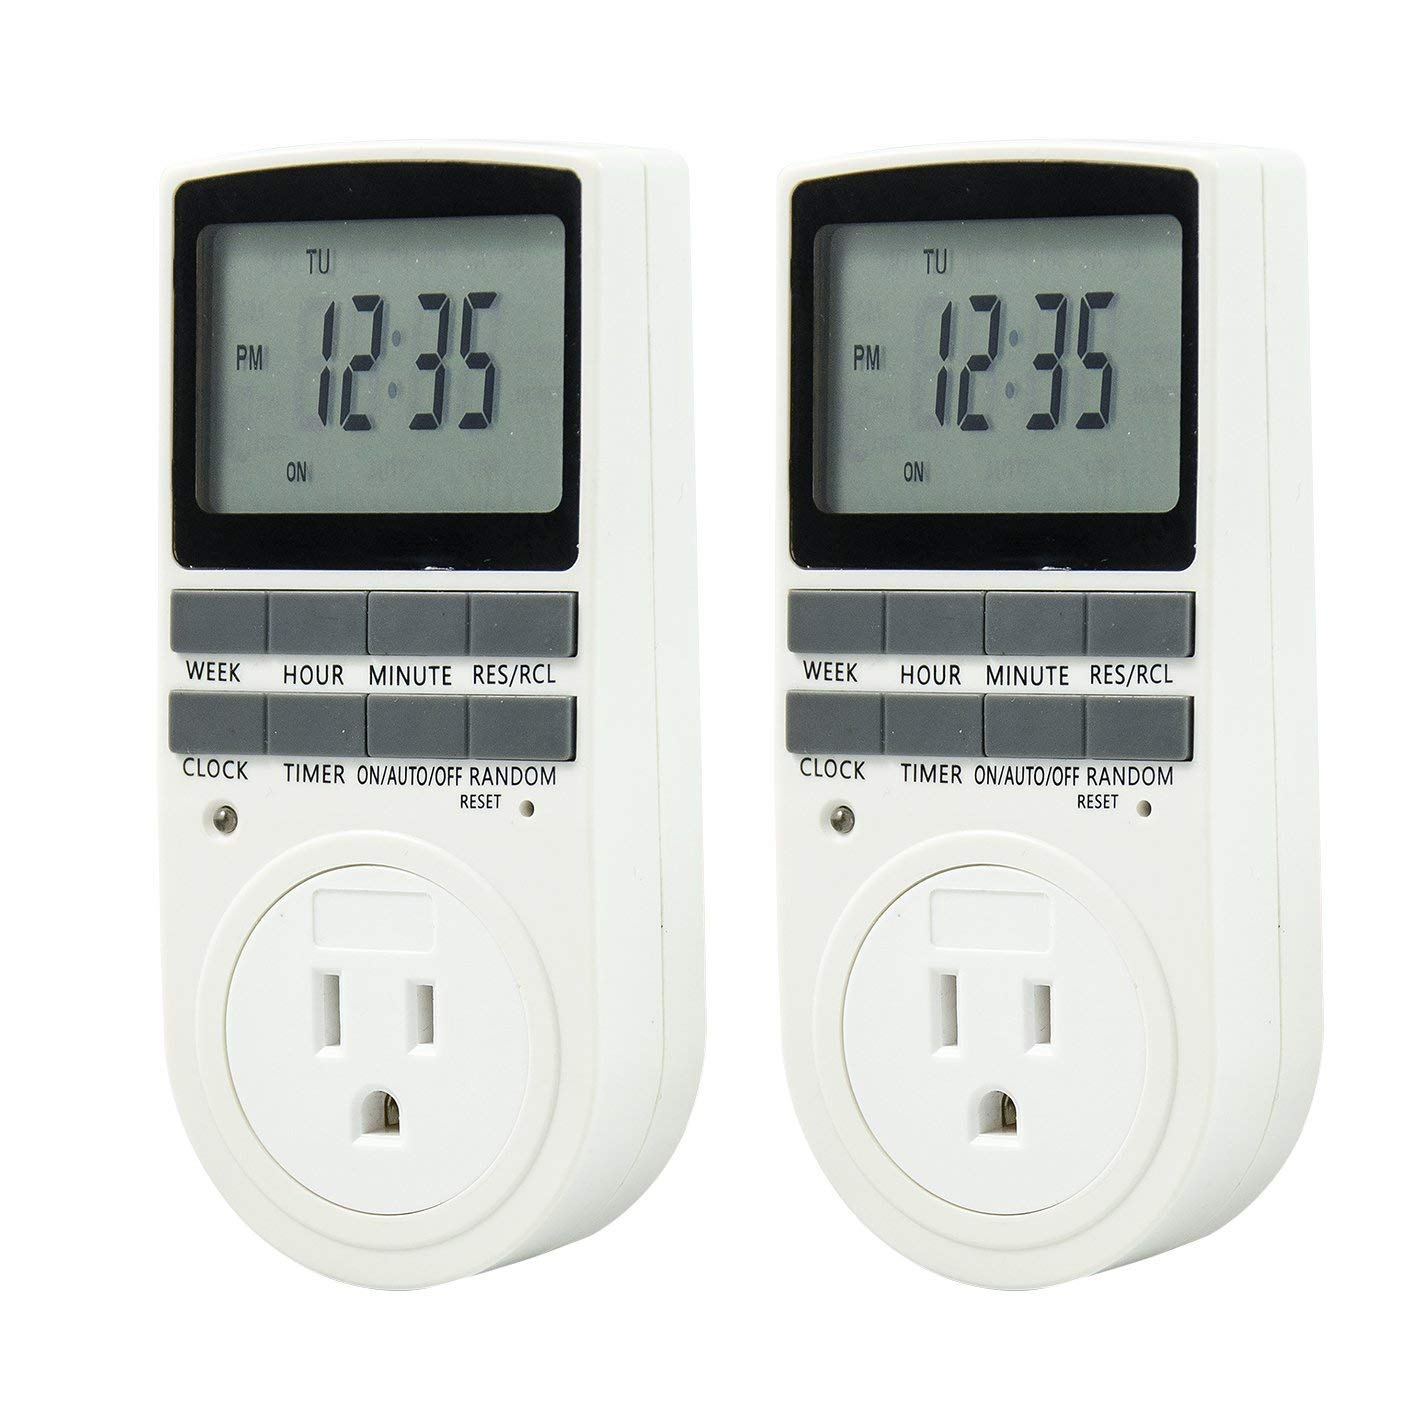 Enover TS18 15A//1800W 7-day Programmable Plug-in Digital Timer Switch with 3-Pro